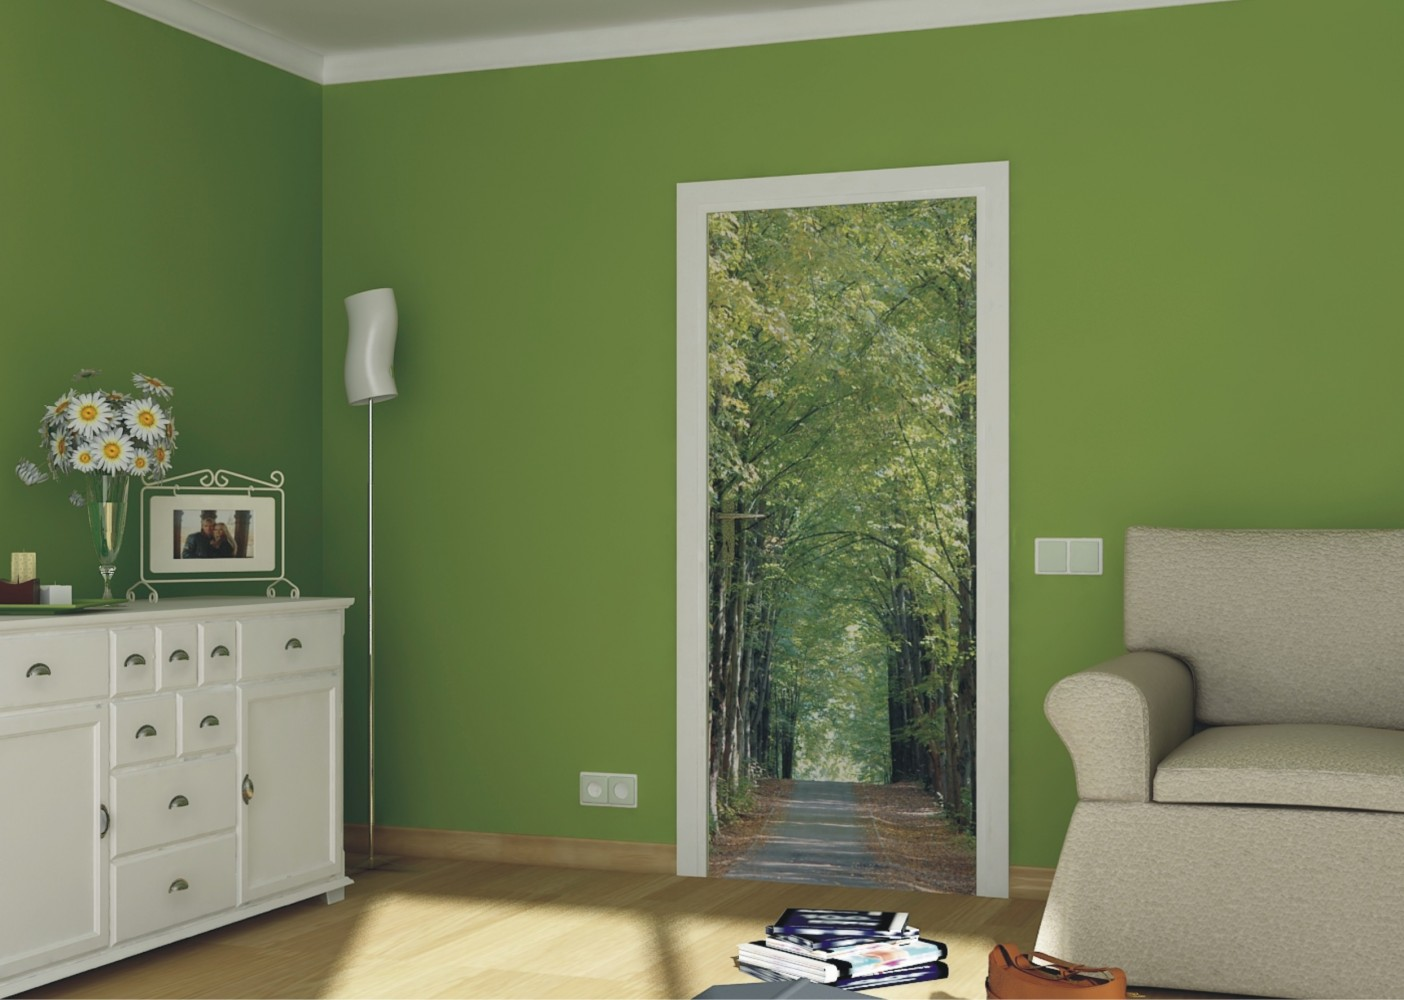 Door wallpaper wall mural wallpaper park parkway forest for Door mural wallpaper